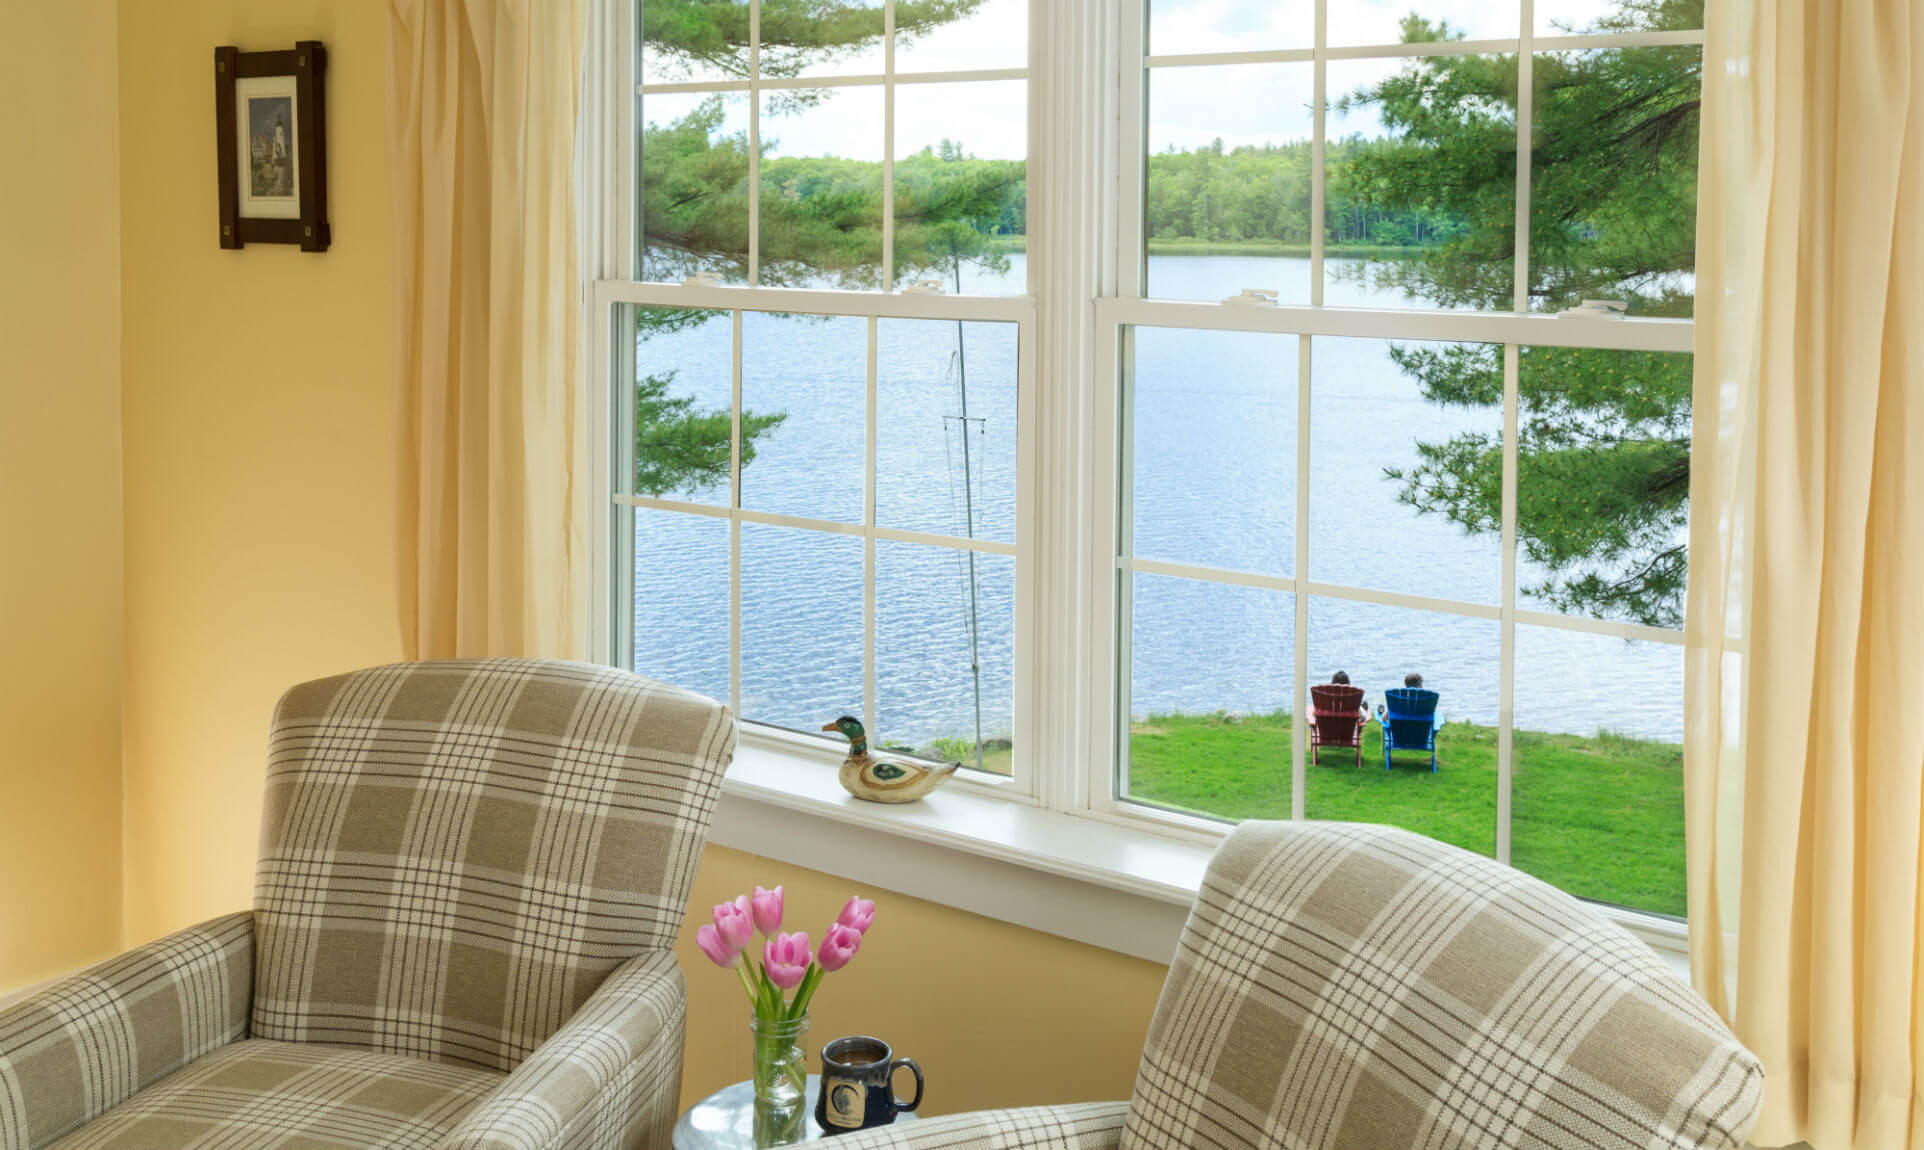 Sitting area and window overlooking lake seating area